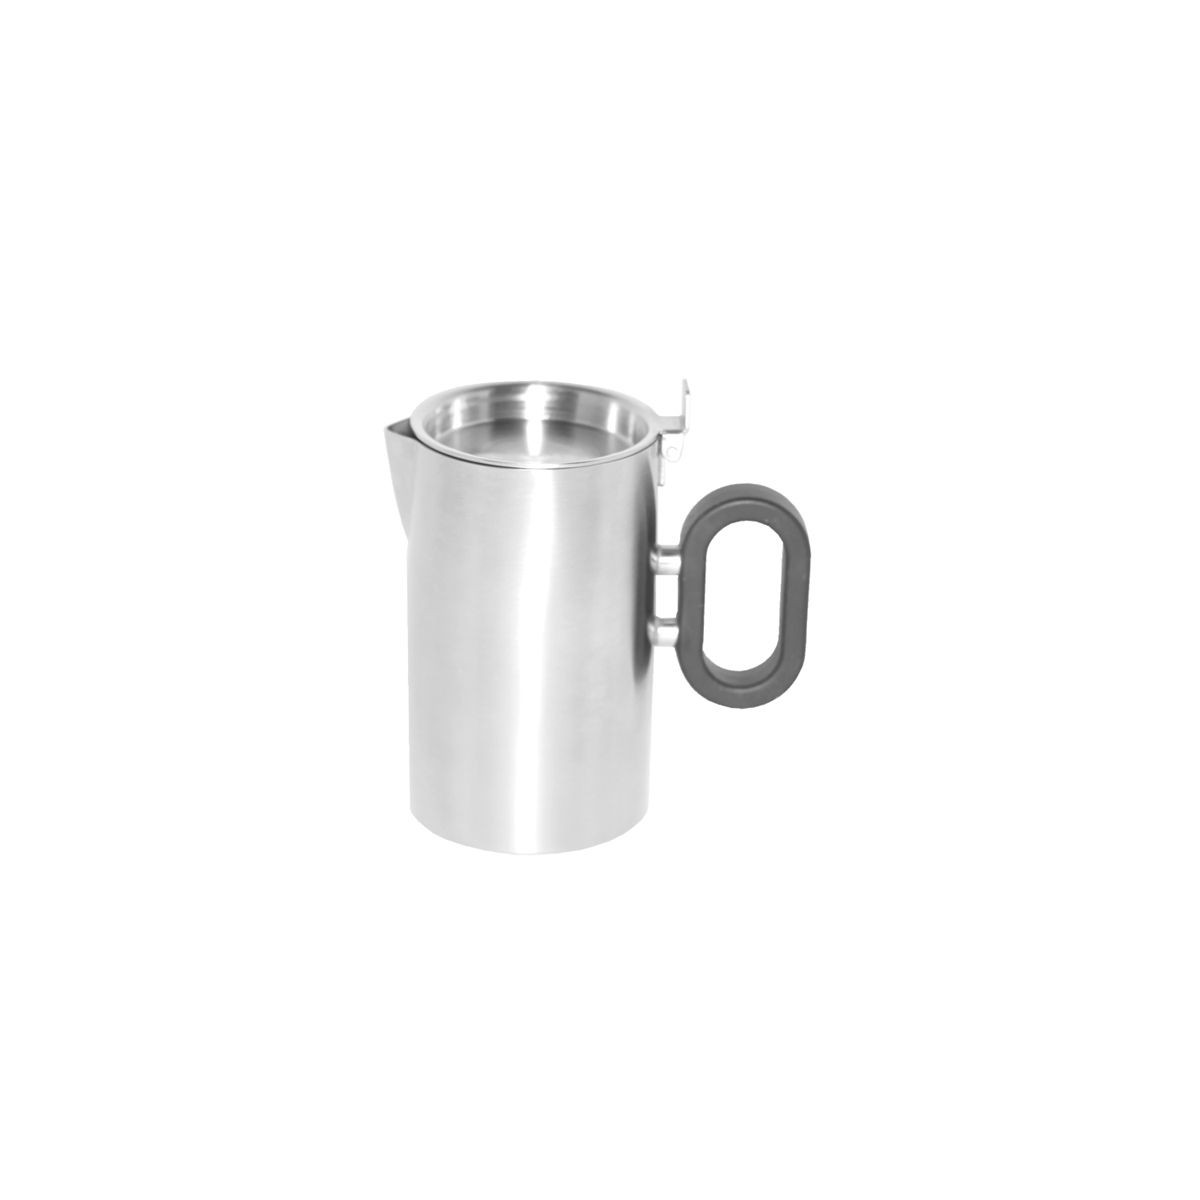 Service Ideas SB-26 SteelForme Creamer with Lid, 9 oz.